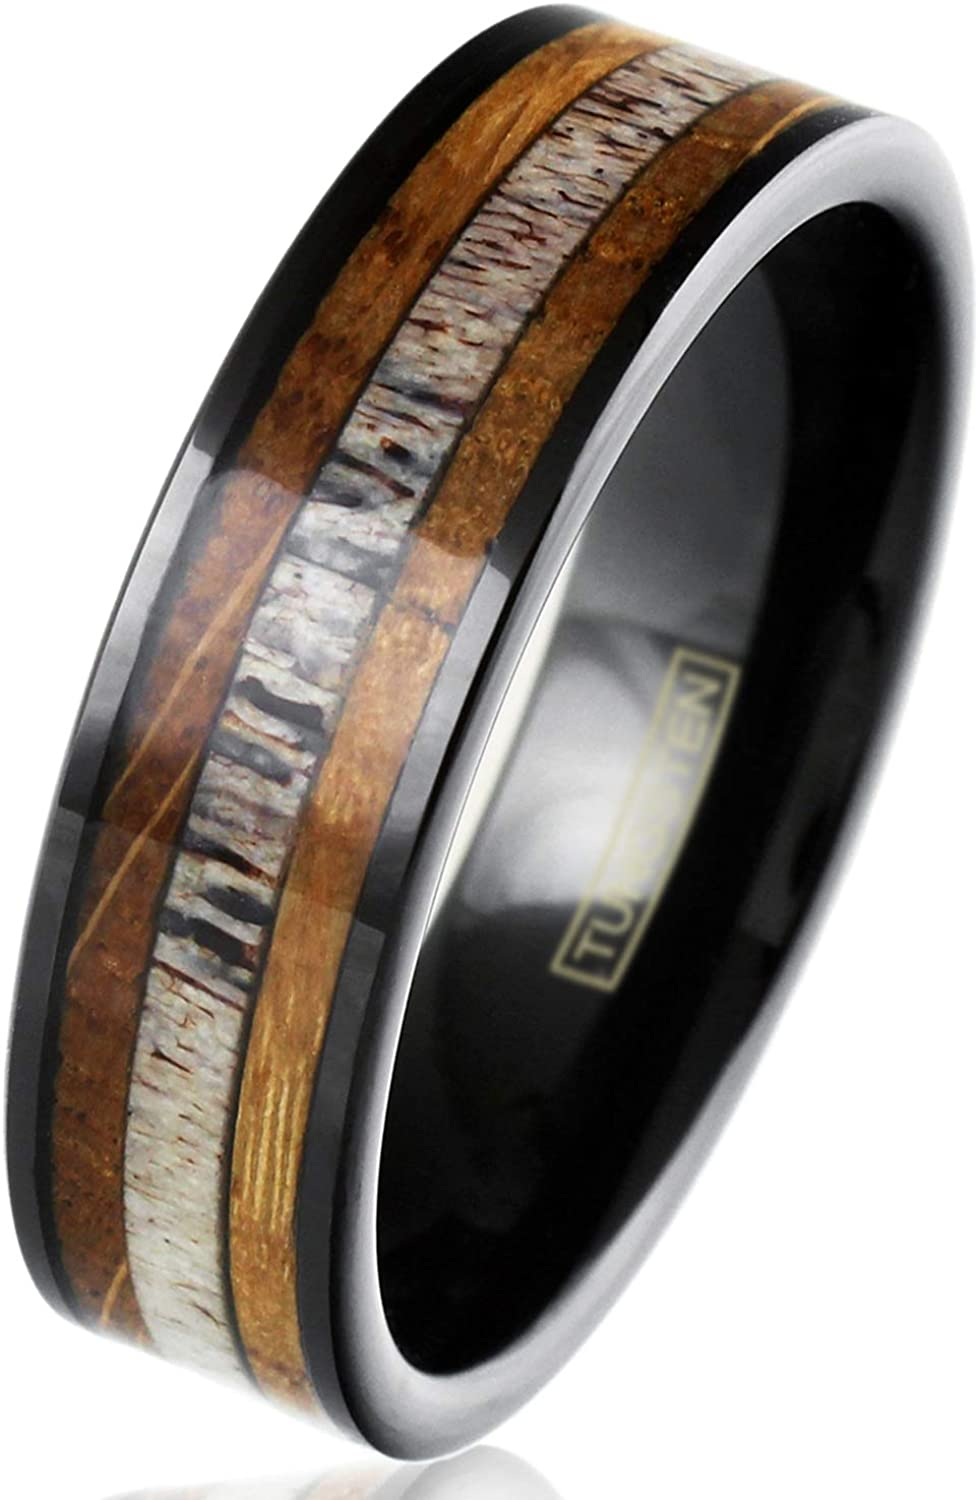 King's Cross Engraved Personalized 6mm/8mm Piano Black Tungsten Carbide Flat Band Ring with Deer Antler Between Whiskey Barrel Oak Wood Inlays.